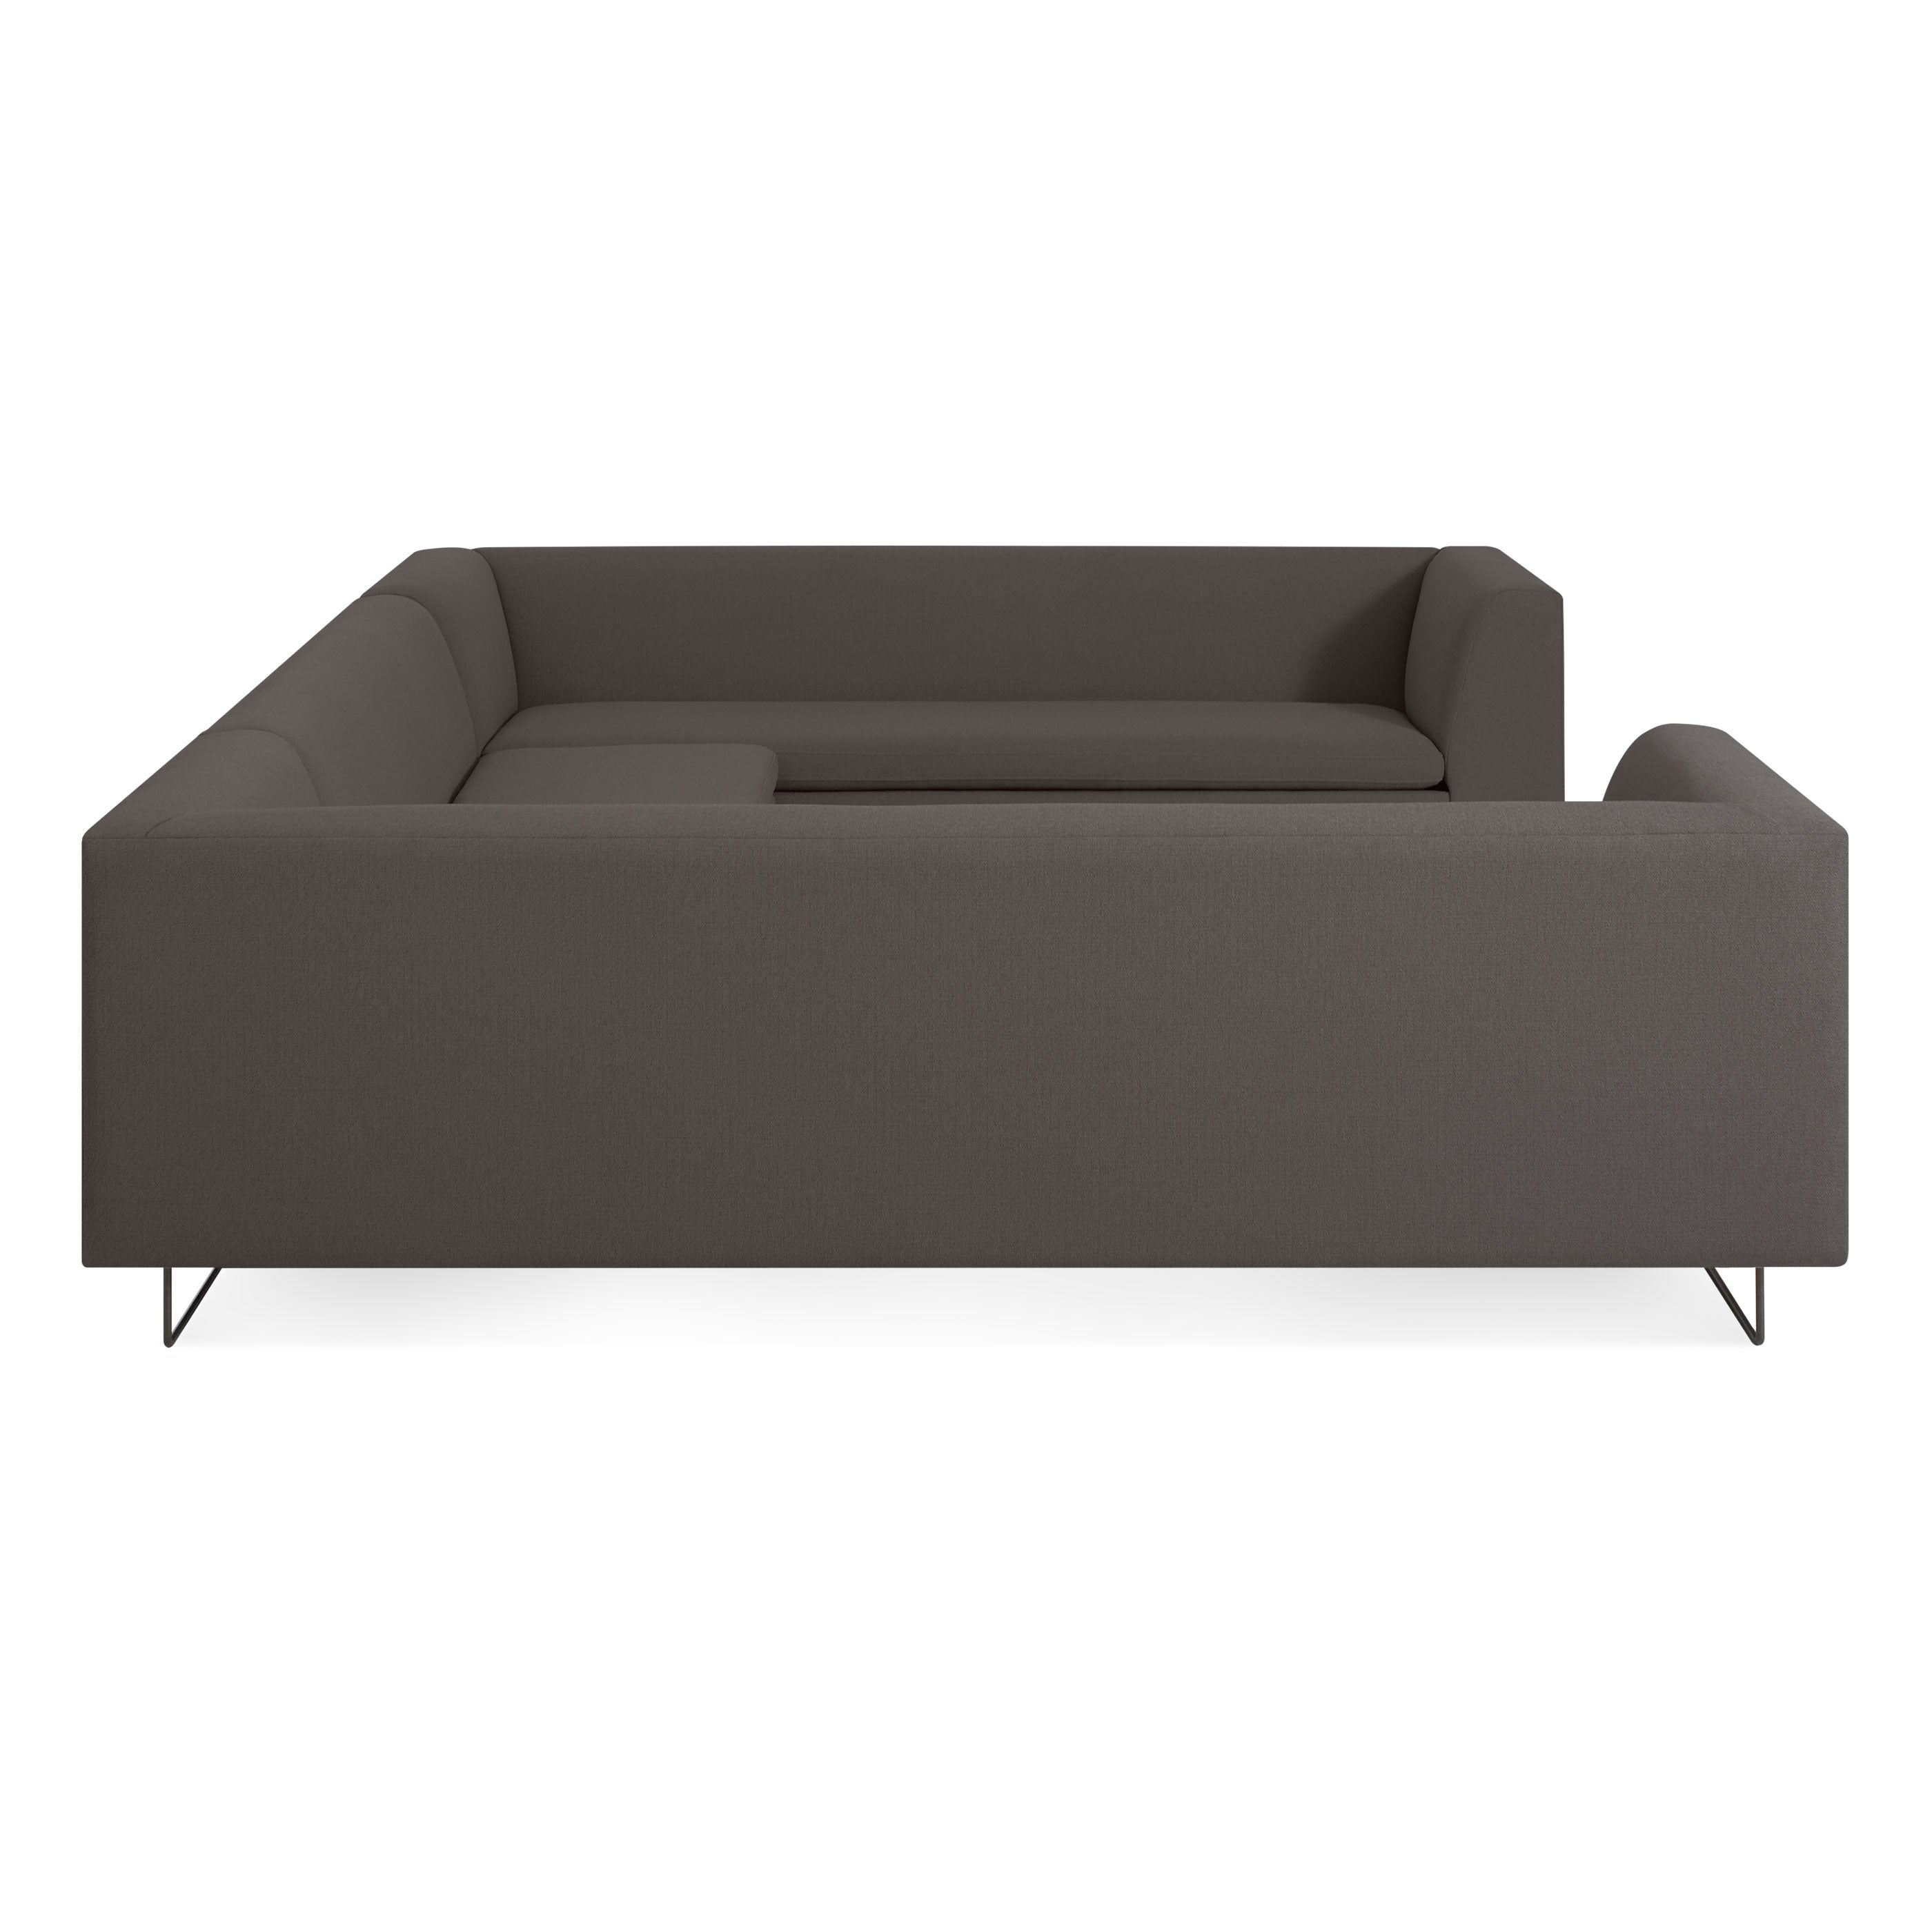 "Bonnie and Clyde 133"" U-Shape Sectional Sofa"